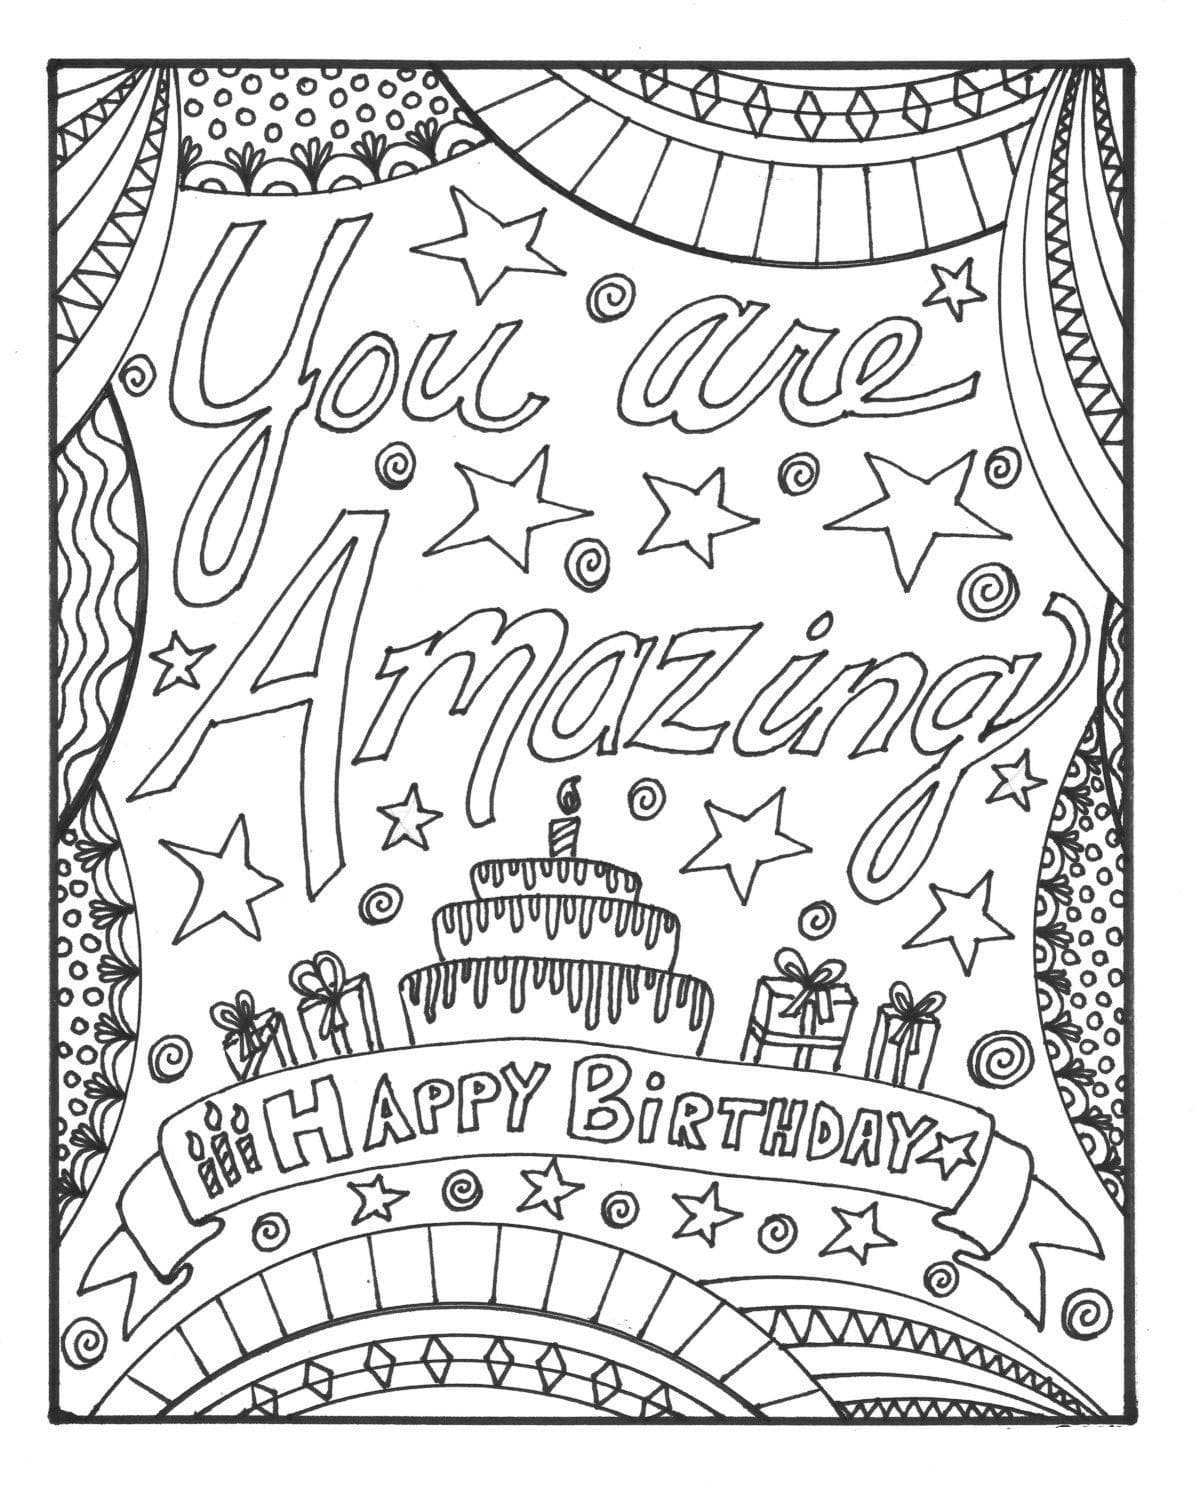 happy birthday coloring pages printable 25 free printable happy birthday coloring pages birthday coloring pages happy printable